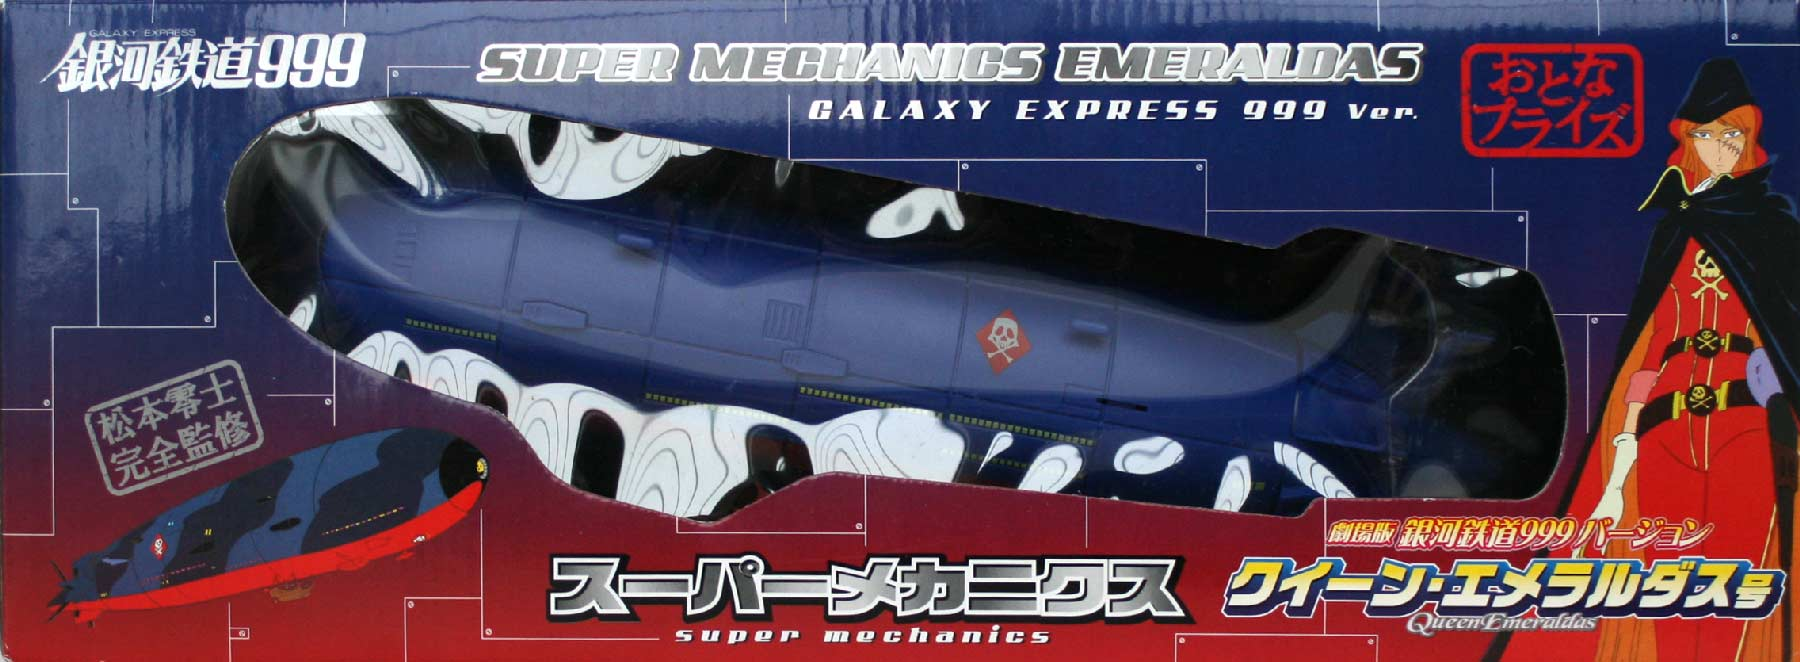 Packaging (face) Queen Emeraldas Super Mechanics - Taito (jouet) - 2009